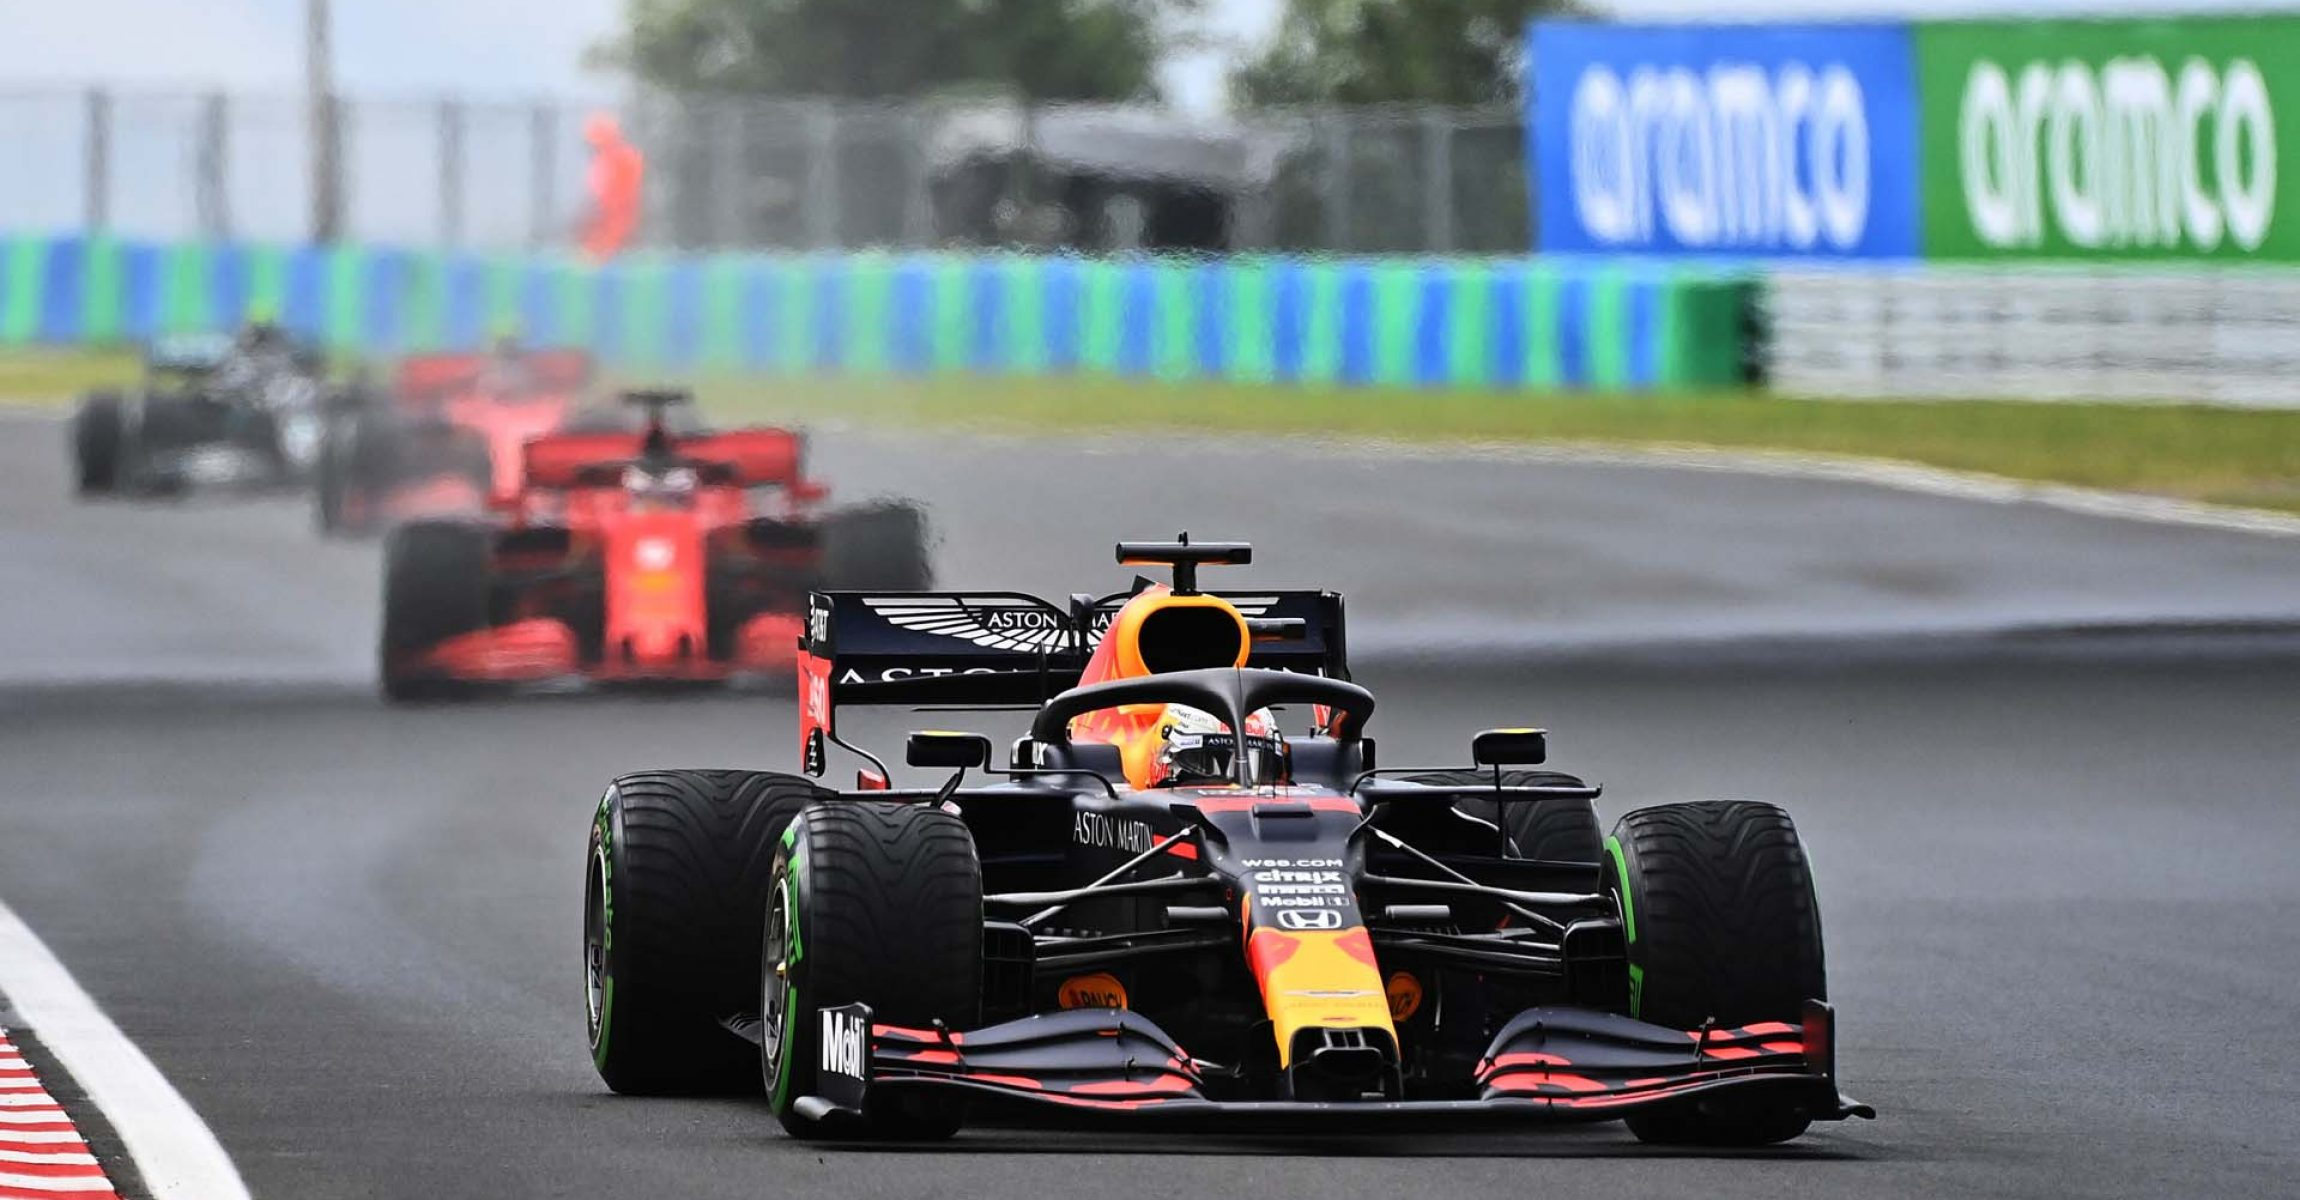 BUDAPEST, HUNGARY - JULY 19: Max Verstappen of the Netherlands driving the (33) Aston Martin Red Bull Racing RB16 on track during the Formula One Grand Prix of Hungary at Hungaroring on July 19, 2020 in Budapest, Hungary. (Photo by Joe Klamar/Pool via Getty Images) // Getty Images / Red Bull Content Pool  // AP-24P6FN1E52111 // Usage for editorial use only //